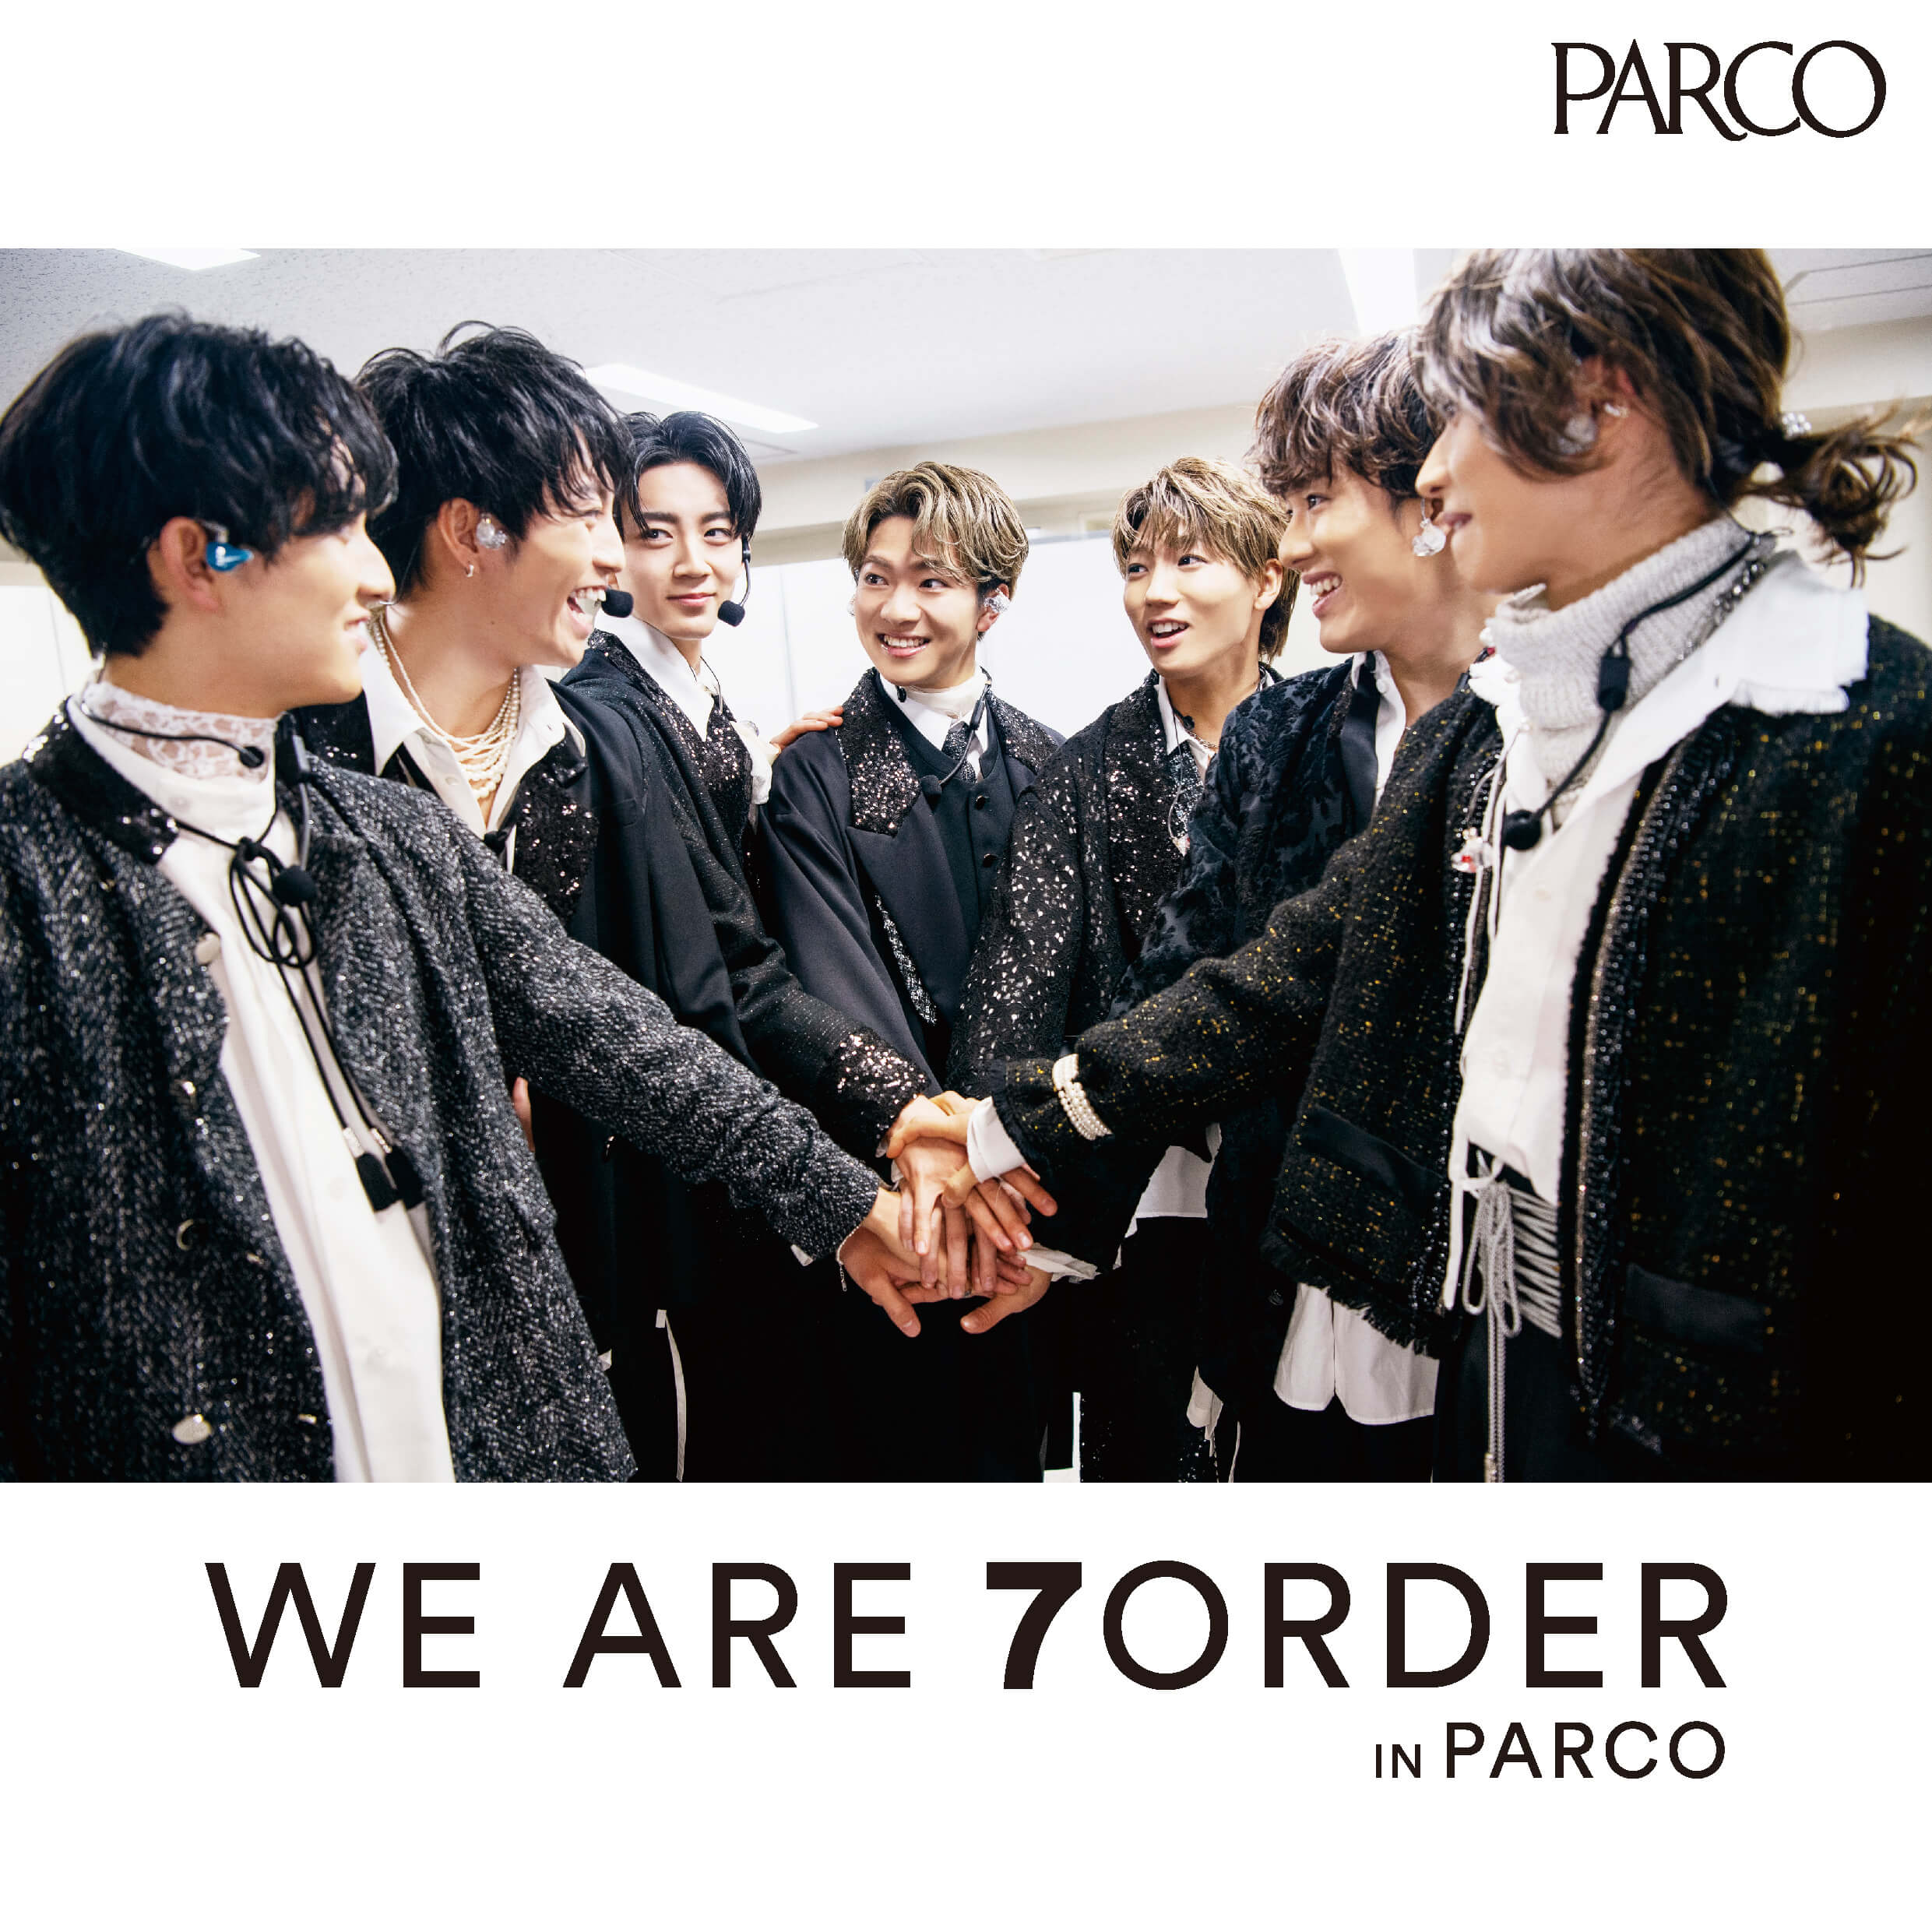 we-are-7order-in-parco1-2